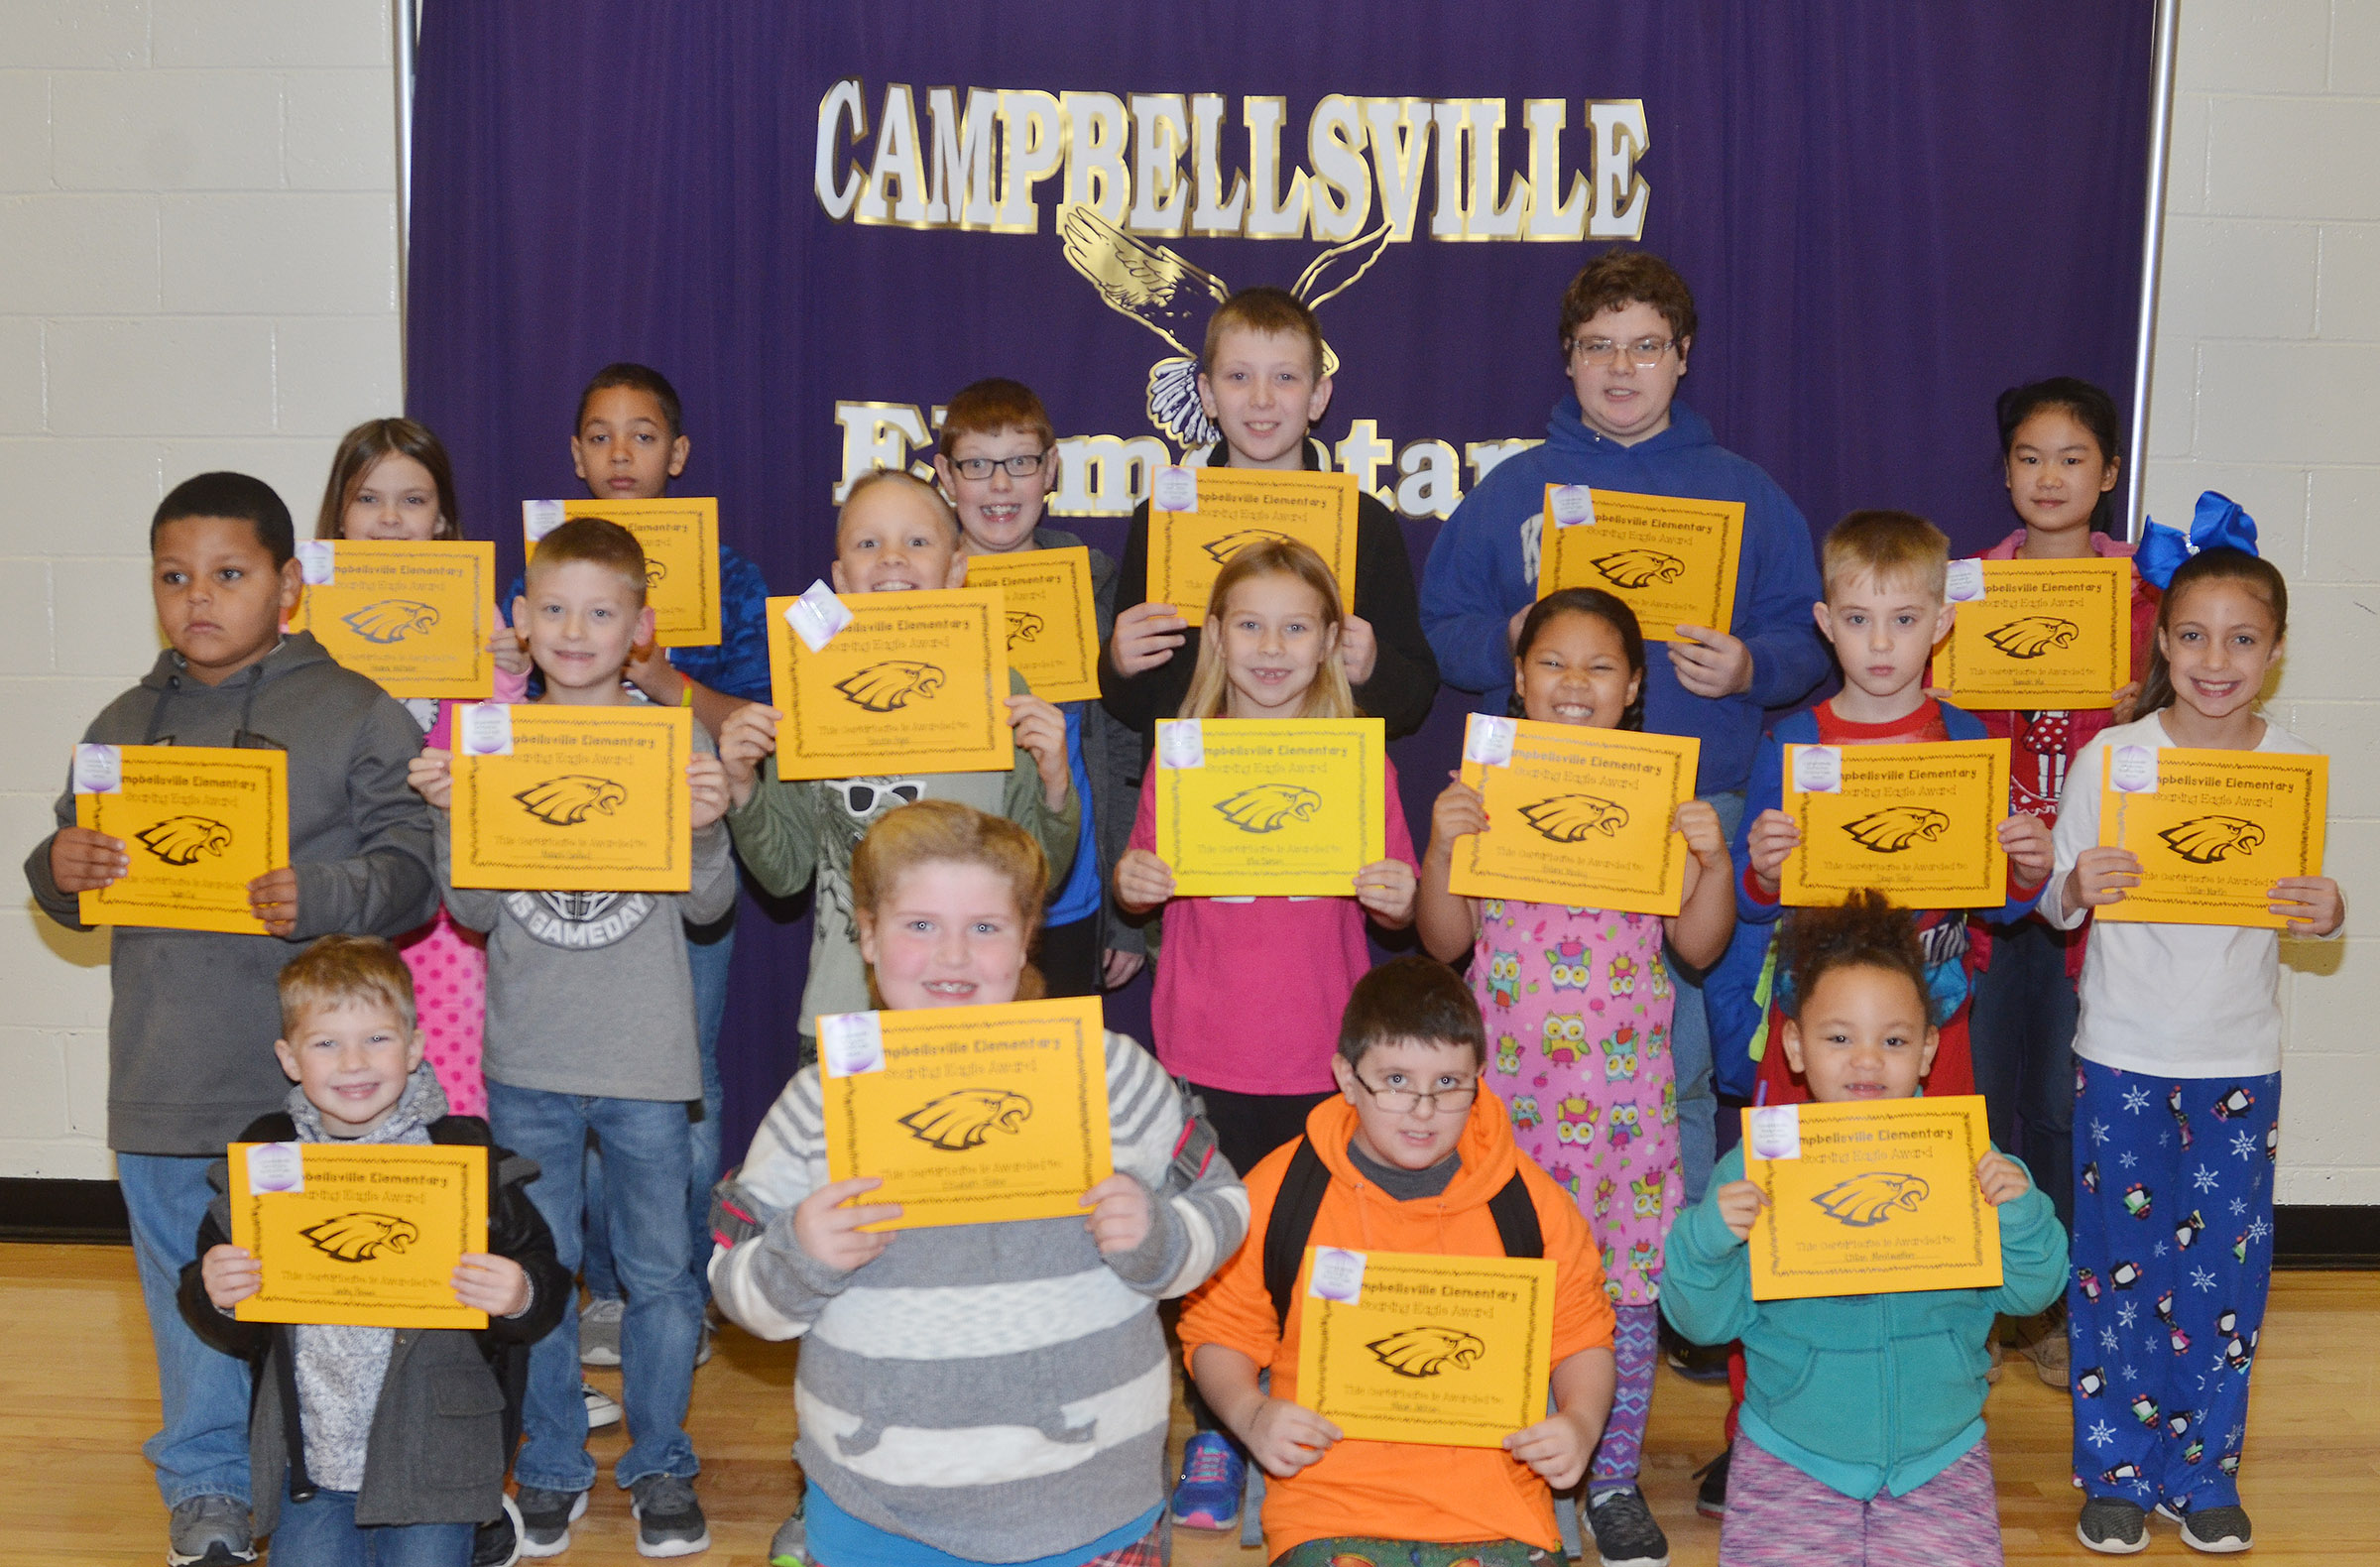 From left, front, are kindergartener Landry Brown, second-grader Elizabeth Foster, third-grader Mason Jackson and kindergartener Lillian Merriweather. Second row, kindergartener Jayden Cox, third-graders Malachi Sanford and Braxton Agee, first-grader Kira Dotson, second-grader Briana Wooley, third-grader Devyn Tingle and second-grader Lillian Martin. Back, fifth-graders Havana Whitaker and Aiden Eastridge, fourth-grader Aidan Phillips, fifth-graders Kaleb Miller and Ian Creason and fourth-grader Hannah Ma. Absent from the photo are kindergartener Macilynn Mann, first-grader Nevaeh Shofner, second-grader Amylah Taylor and fourth-grader Keaton Hord.